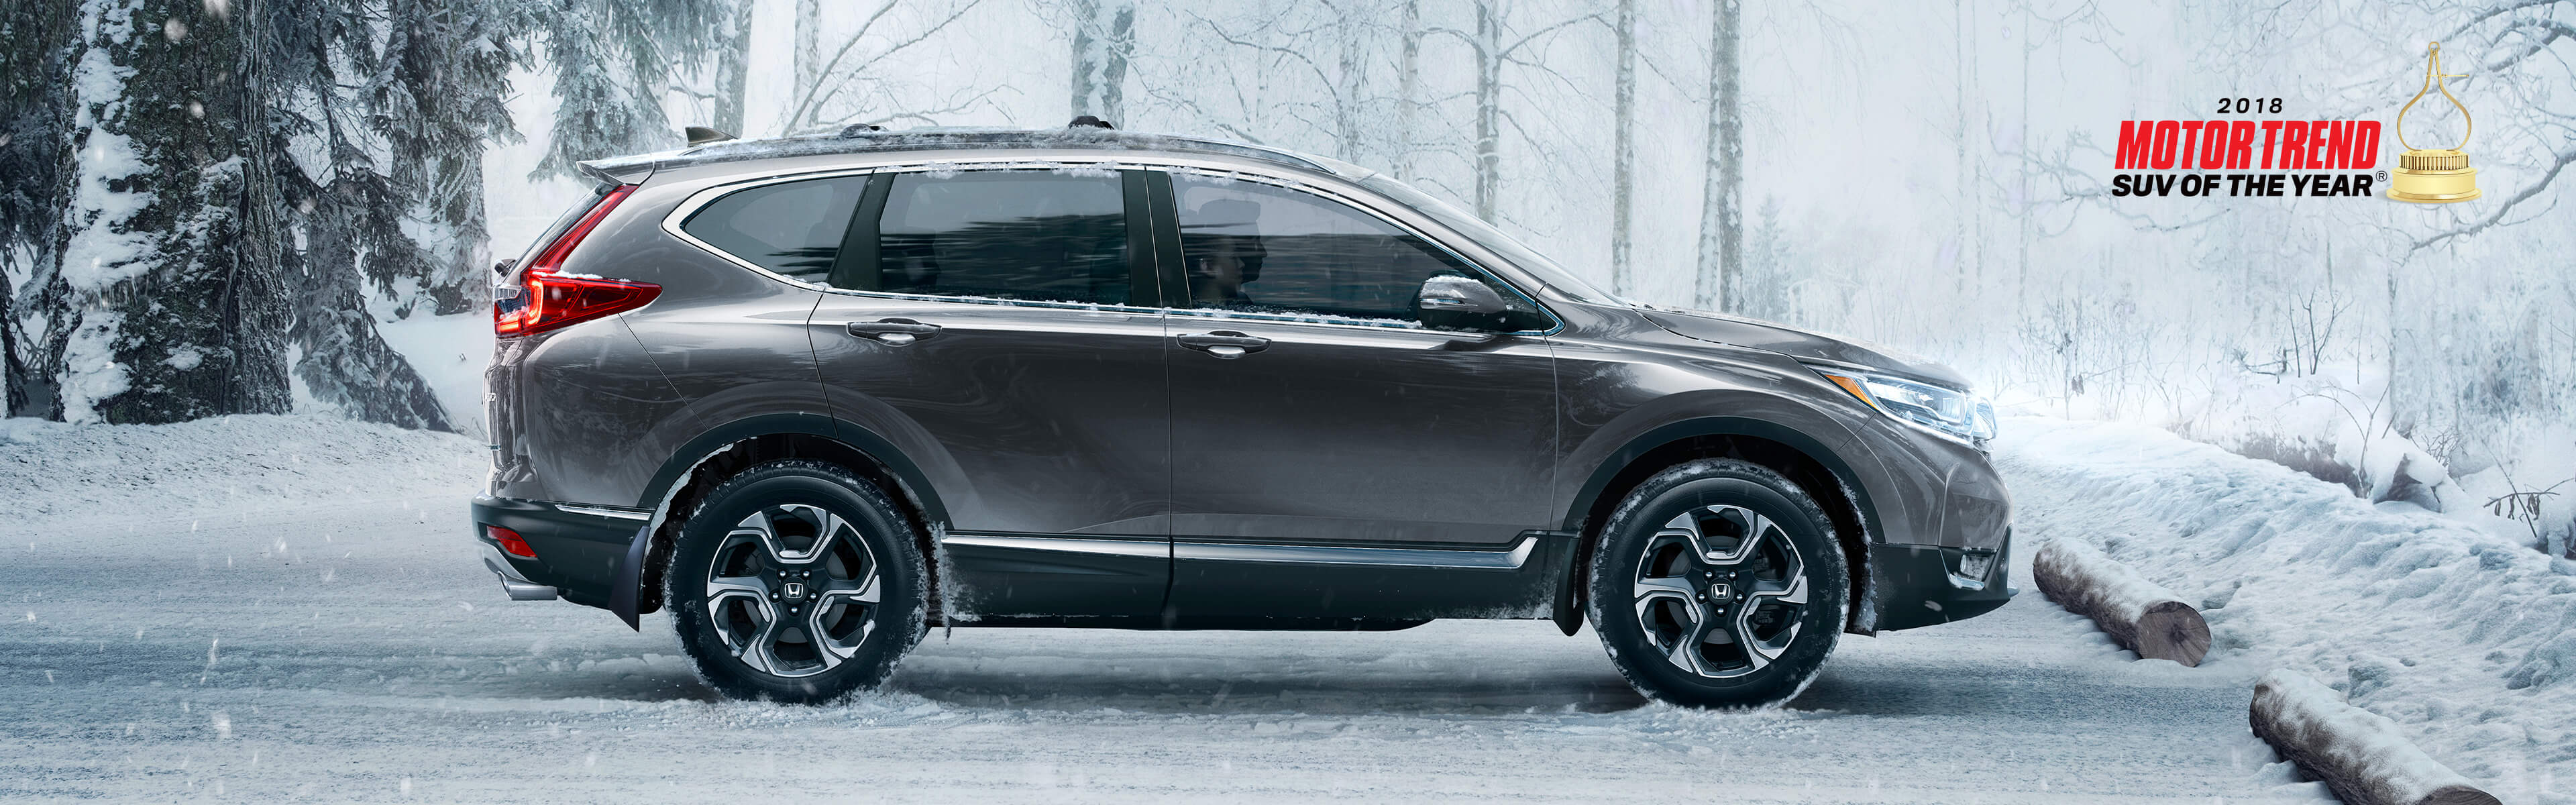 Image of 2018 CR-V parked in Winter conditions